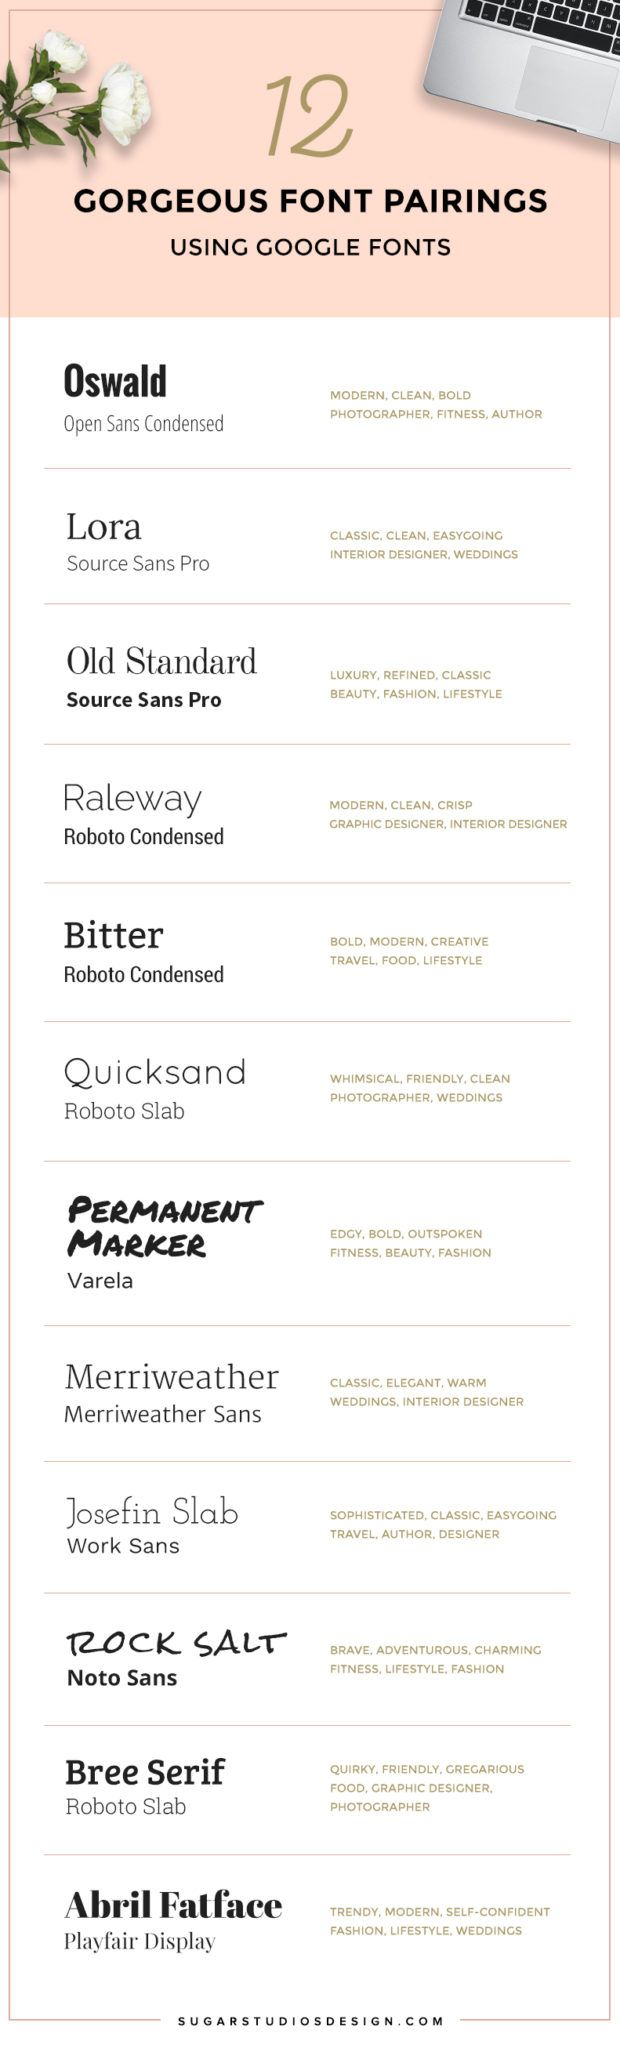 12 gorgeous font pairings using google fonts font pairings google 12 gorgeous font pairings using google fonts picking fonts for your biz is so important i put together a free guide to the best font pairings using ccuart Images